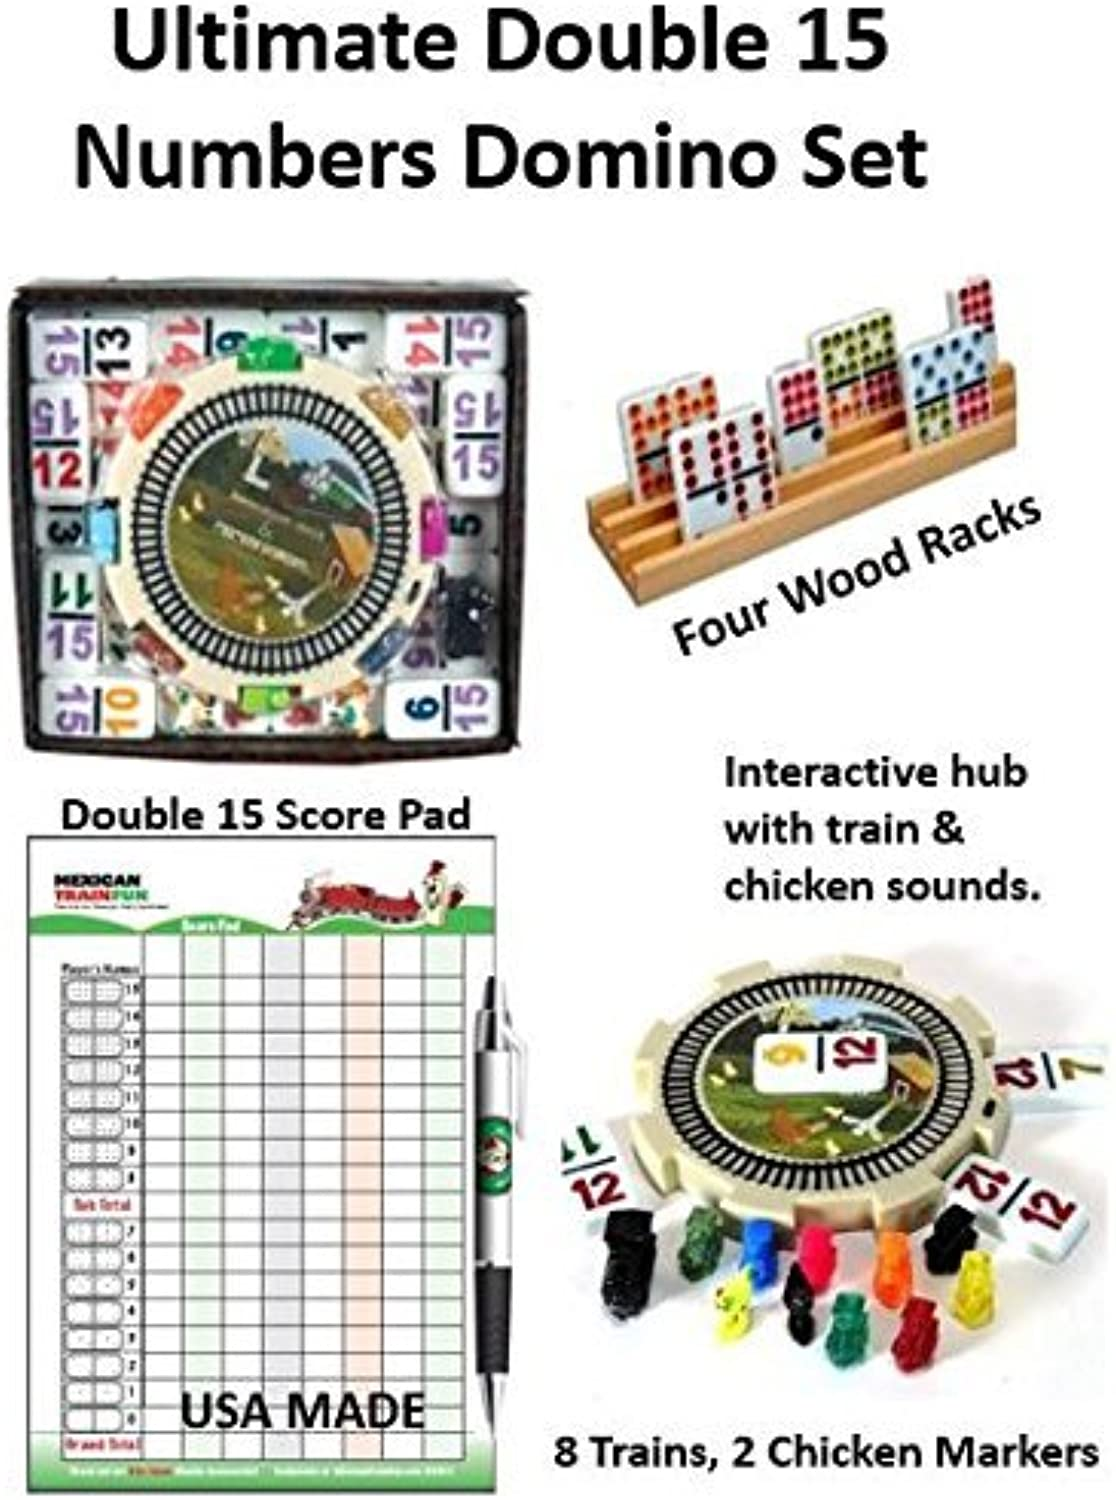 Mexican Train Double 15 Ultimate Numbers Set by Mexicantrainfun